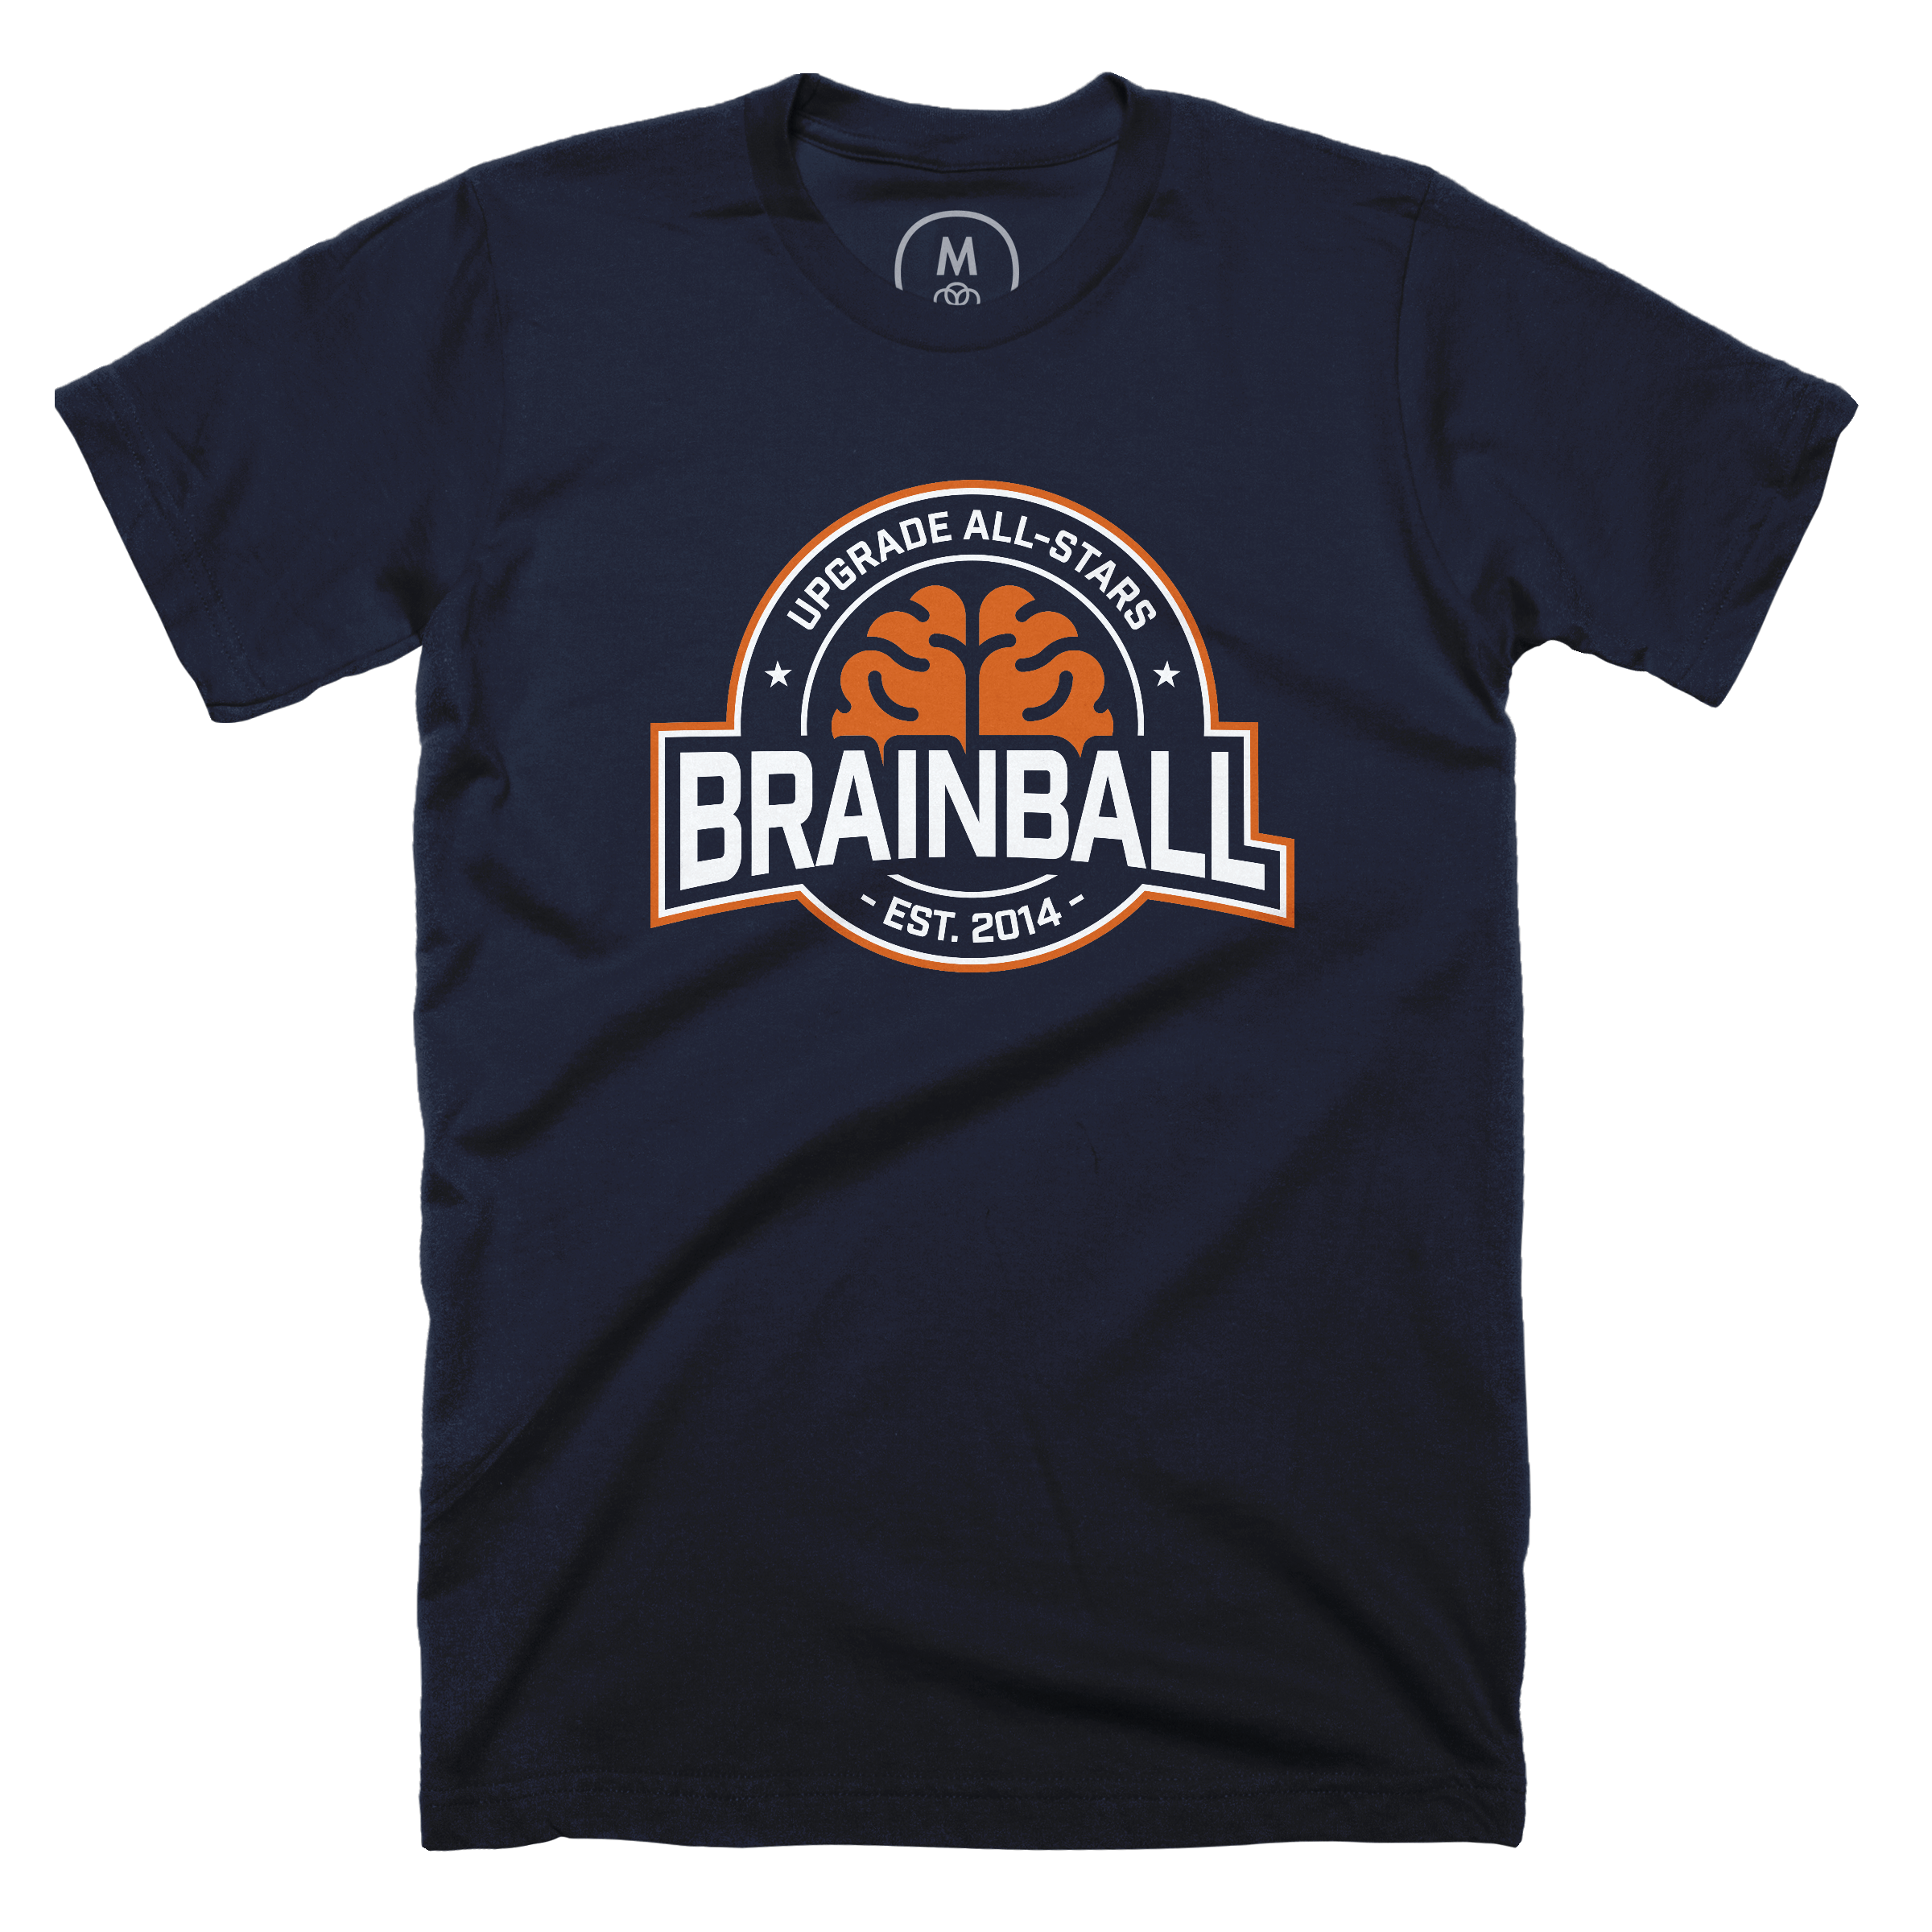 Upgrade Brainball All-Stars Midnight Navy (Men's)